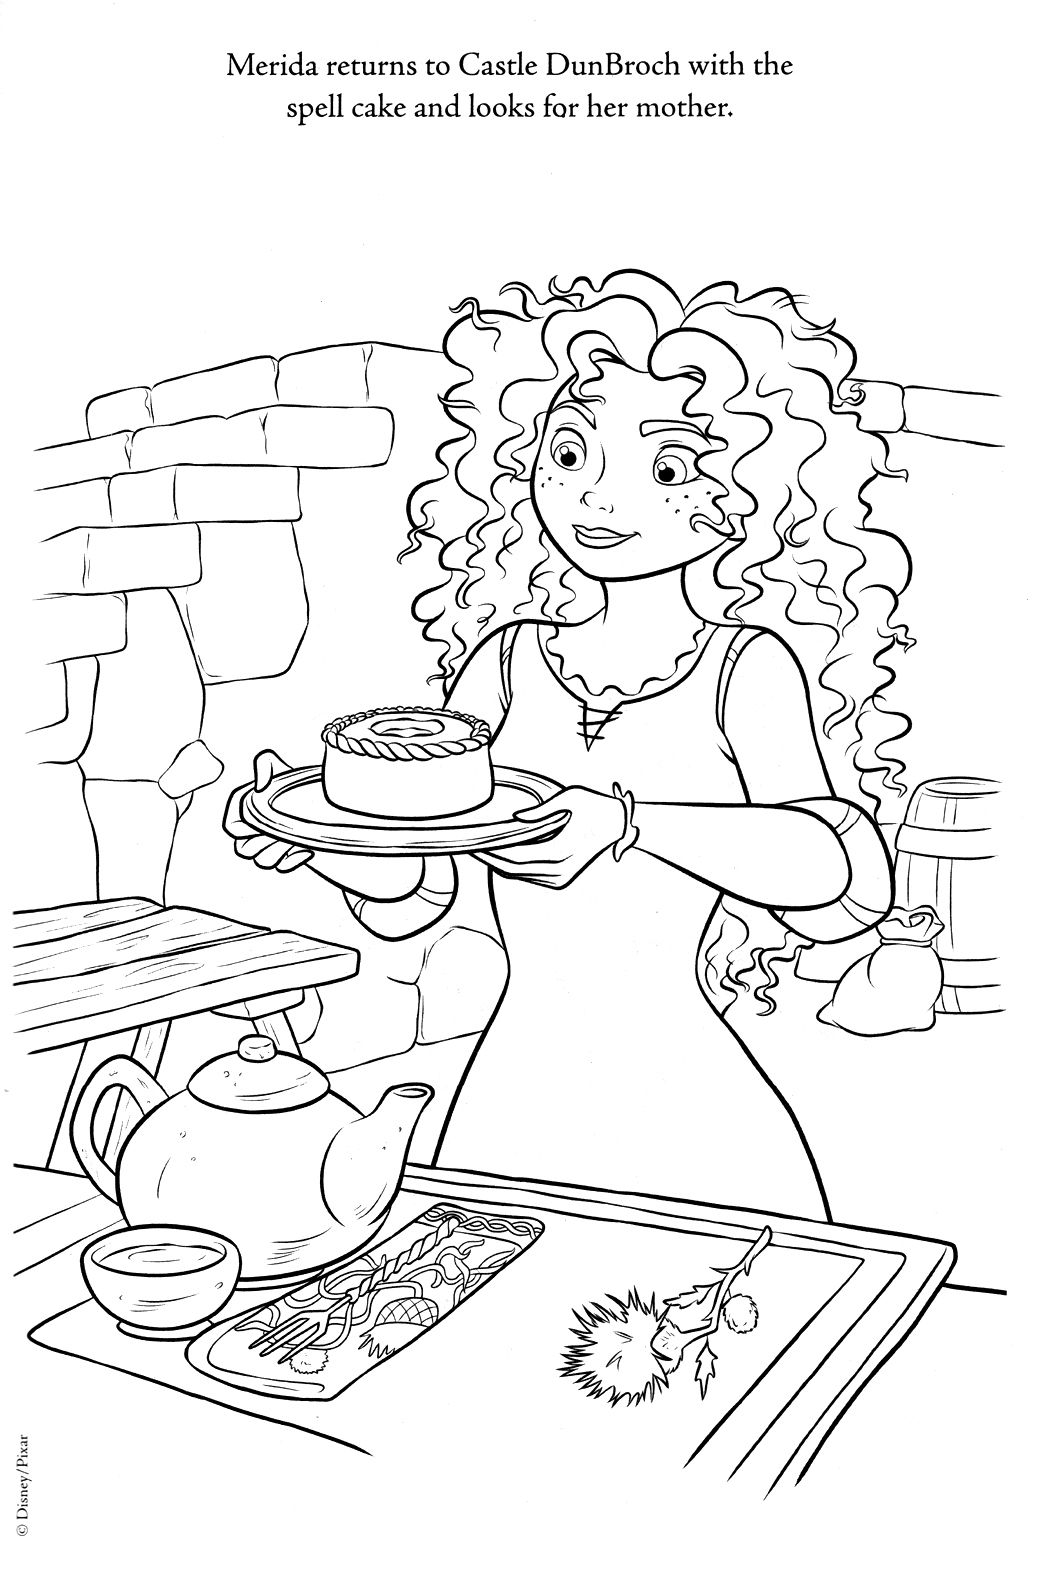 Disney Coloring Pages Disney Coloring Pages Coloring Books Princess Coloring Pages [ jpg ]